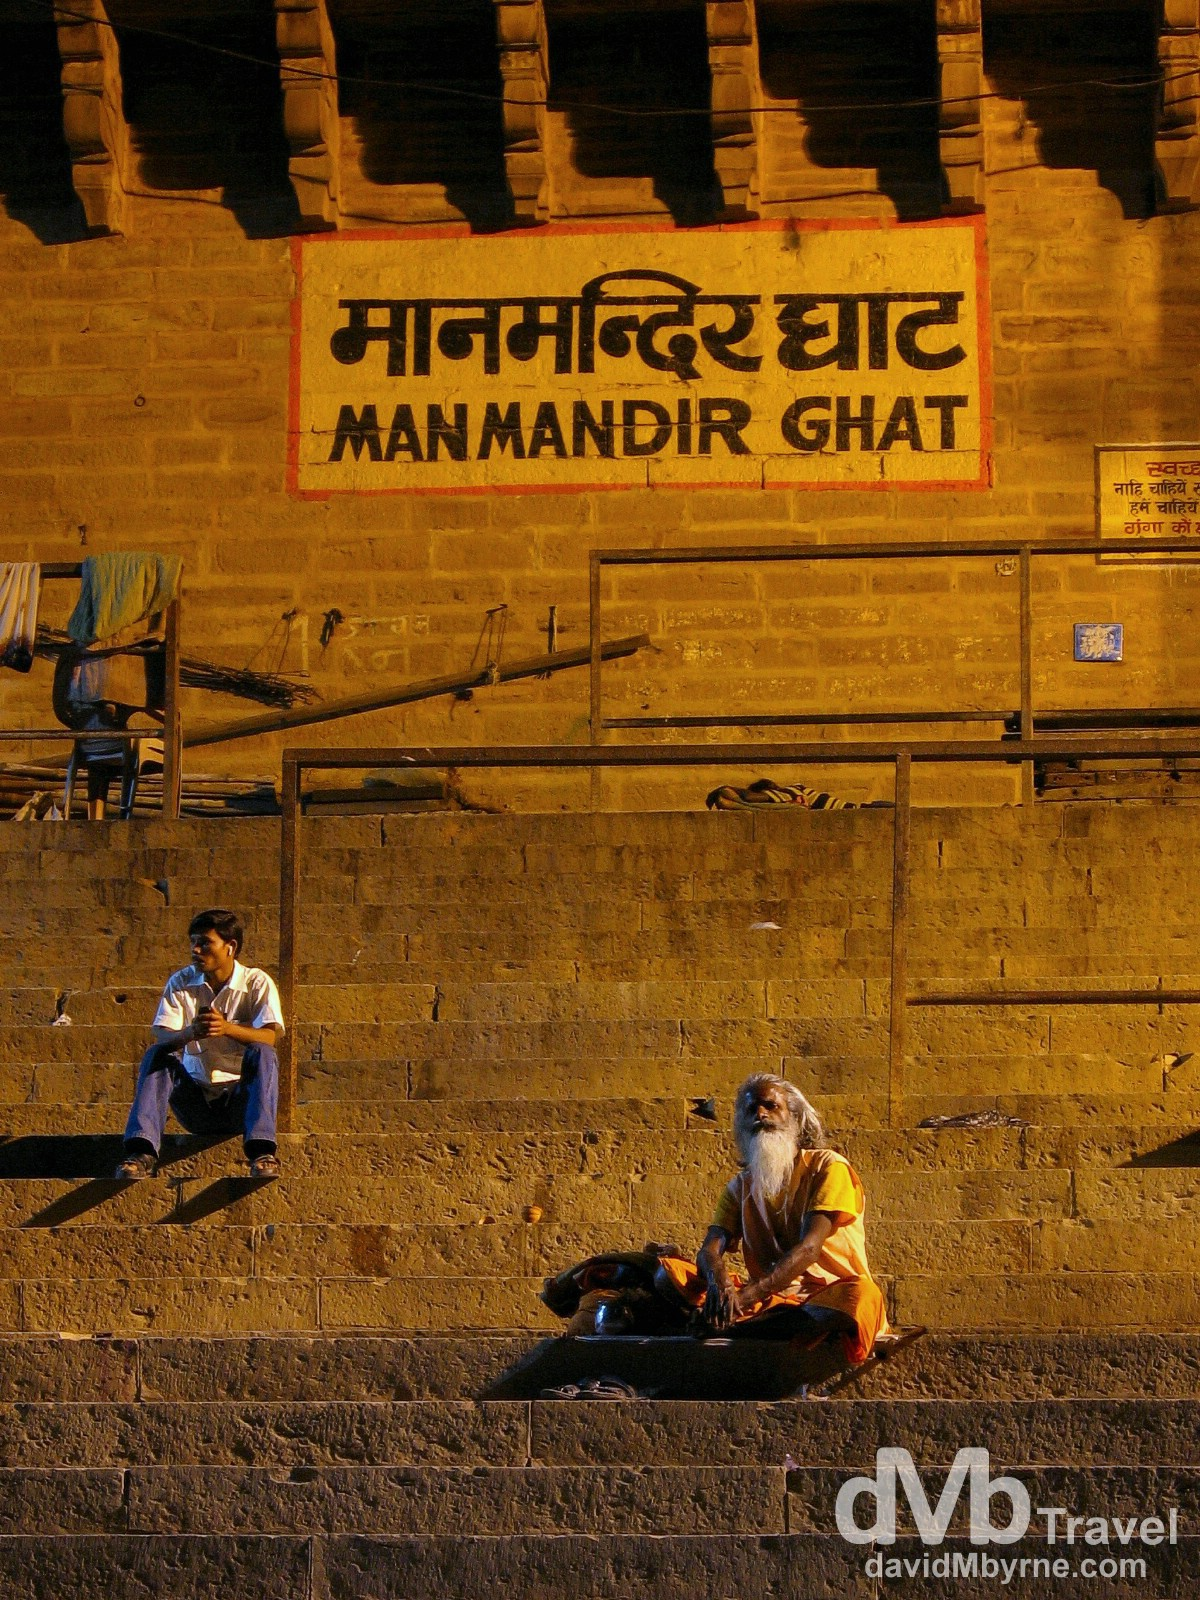 A Sadhu, a Hindu holy man on the path to enlightenment, and a local sitting at Manmandir Ghat, Varanasi, India. Ghats have been used in India for centuries, primarily for worship, but also for bathing and washing clothes. They are also used for the final ritual of cremation and some of Varanasi's Ghats are solely used for this purpose. March 18th 2008.